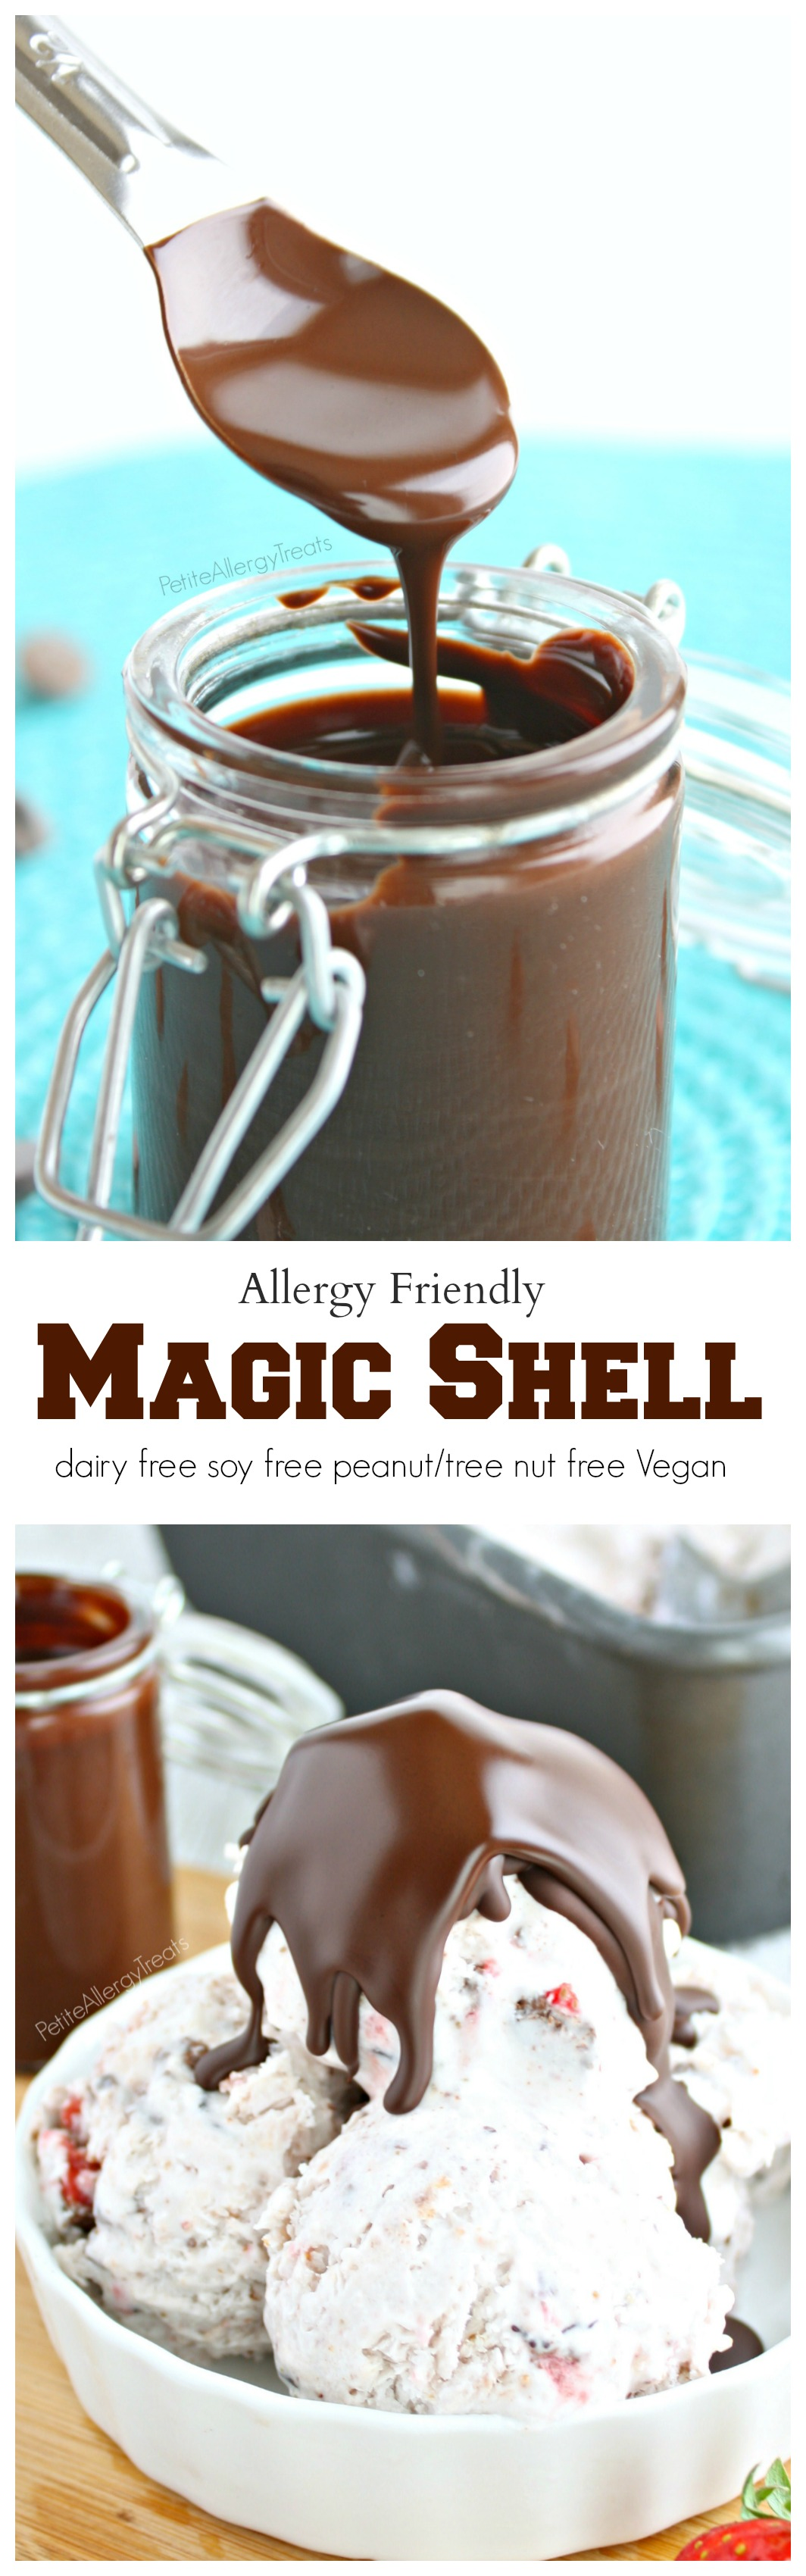 Homemade Magic Shell (Vegan)- 2 ingredients make this chocolate a perfect topping for ice cream. It's also dairy free. soy free and nut free